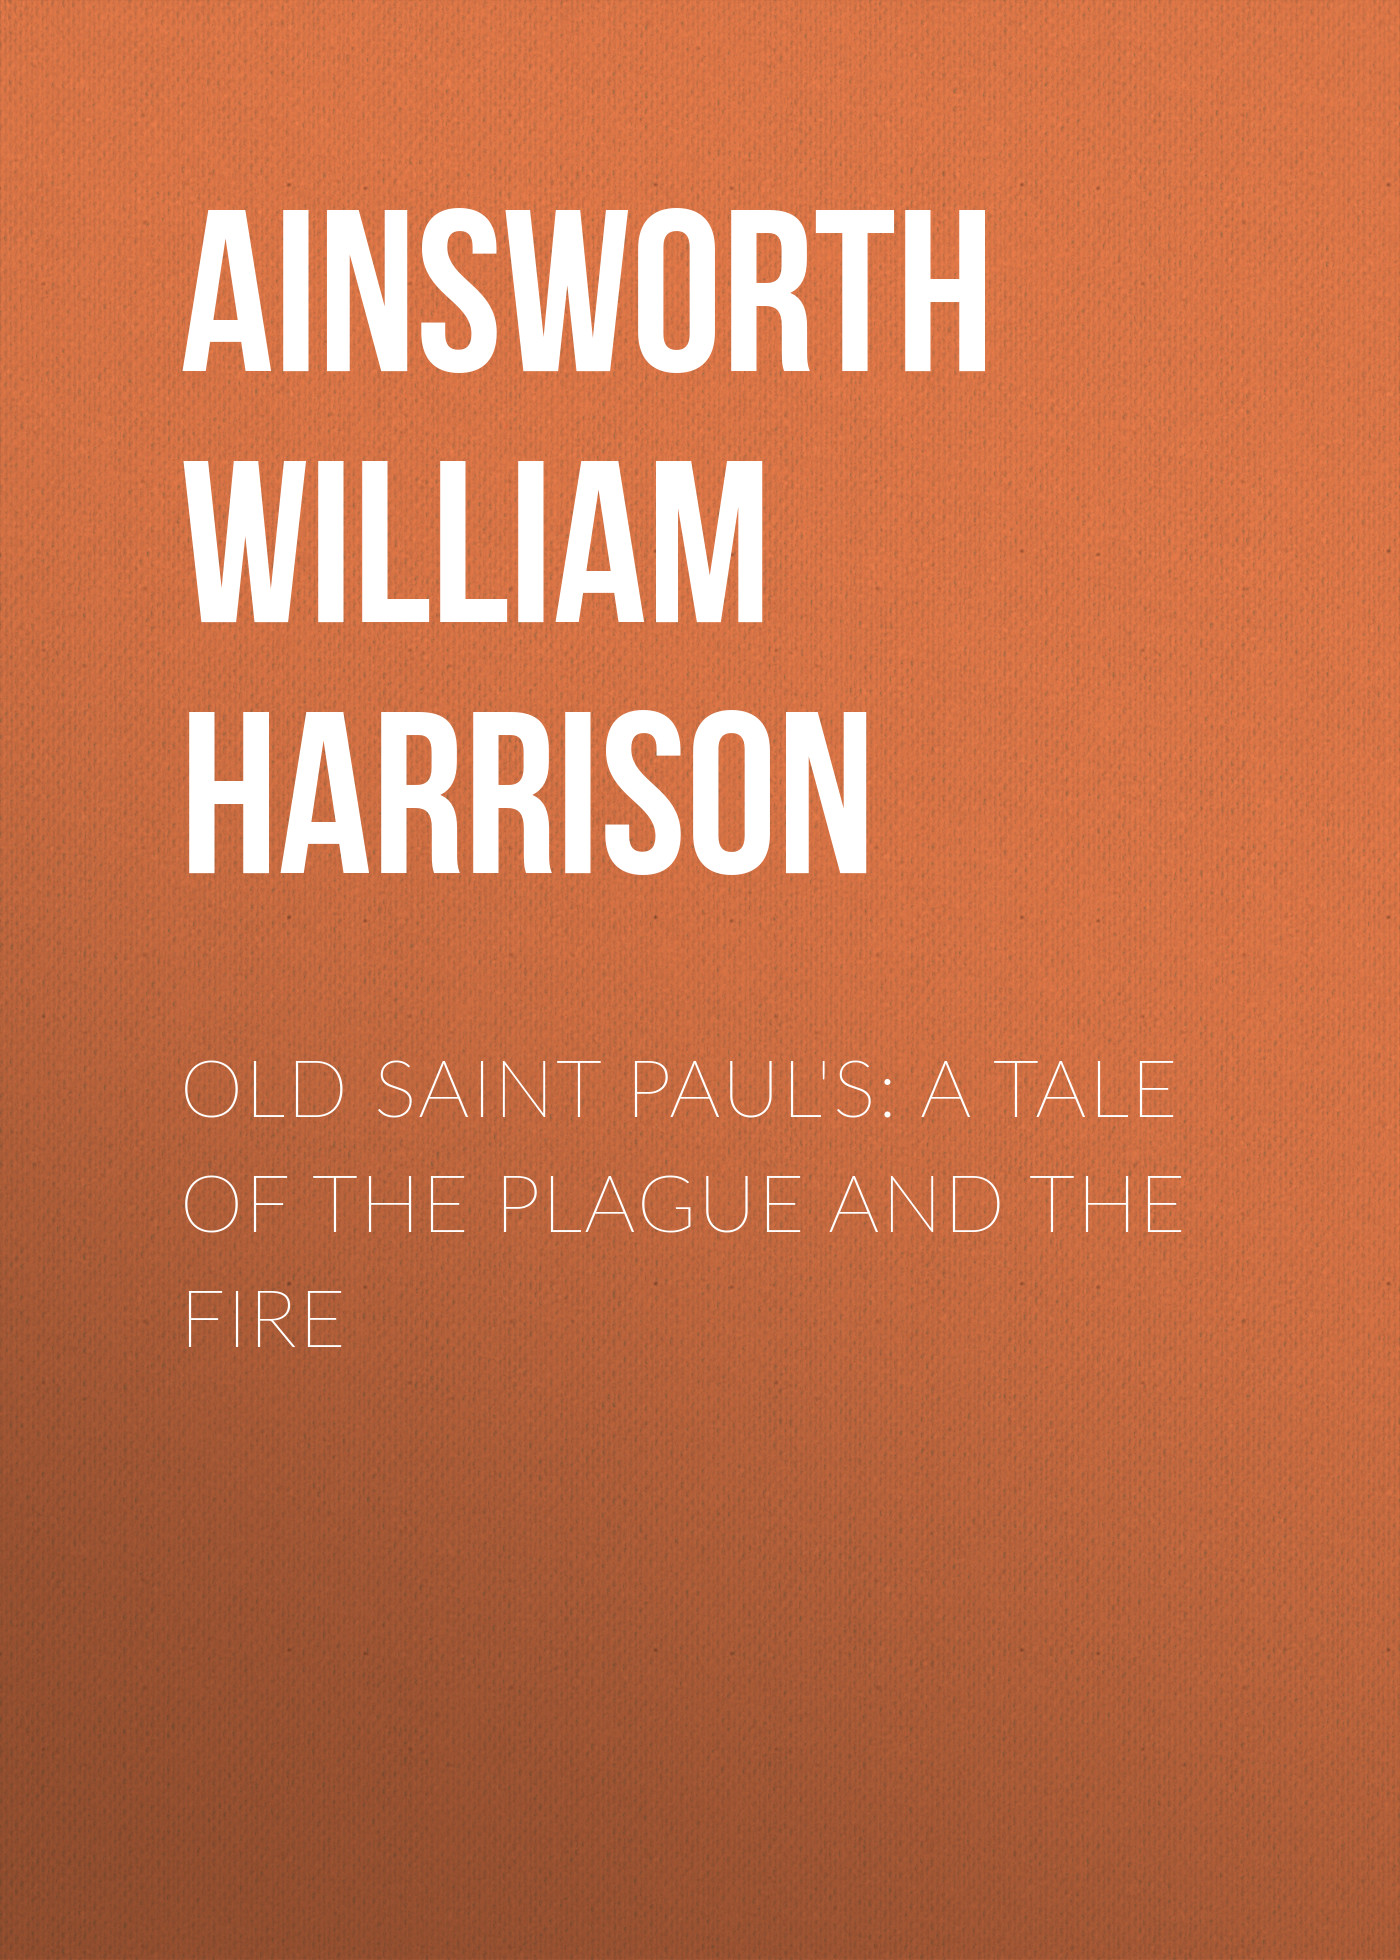 Ainsworth William Harrison Old Saint Paul's: A Tale of the Plague and the Fire цена в Москве и Питере